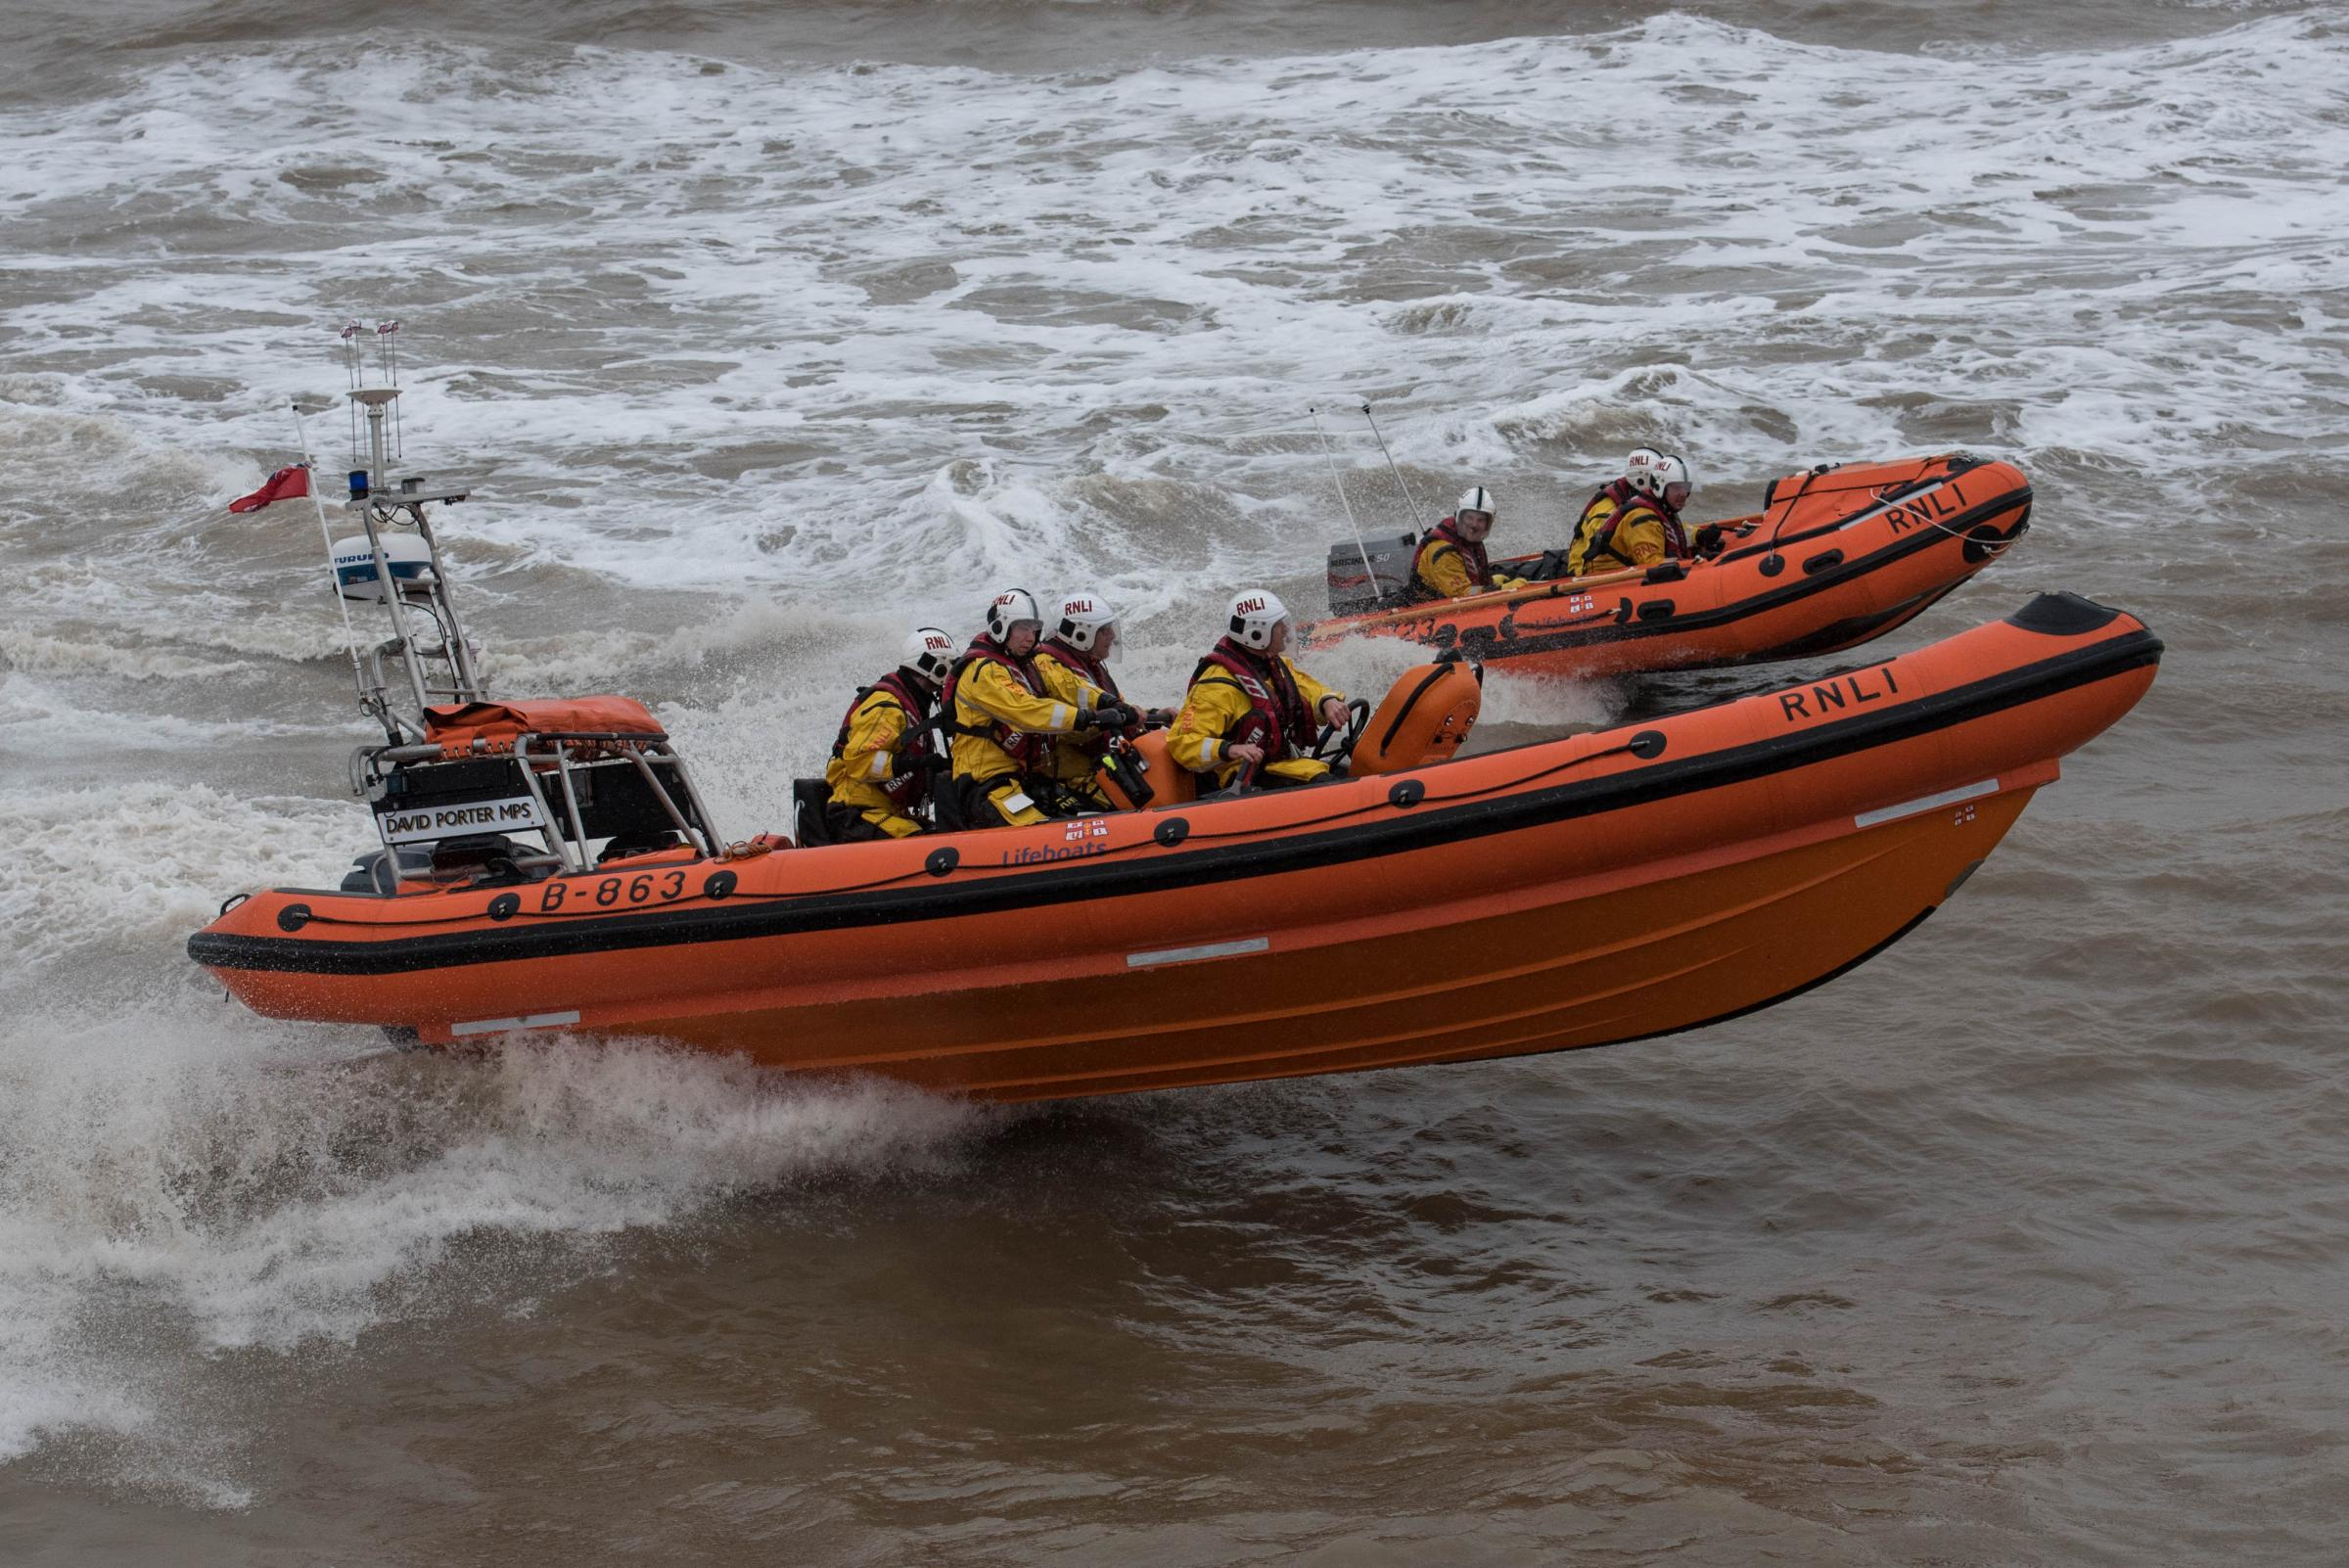 Lifeboat volunteers rescue sailors trapped after 20ft cruiser ran aground